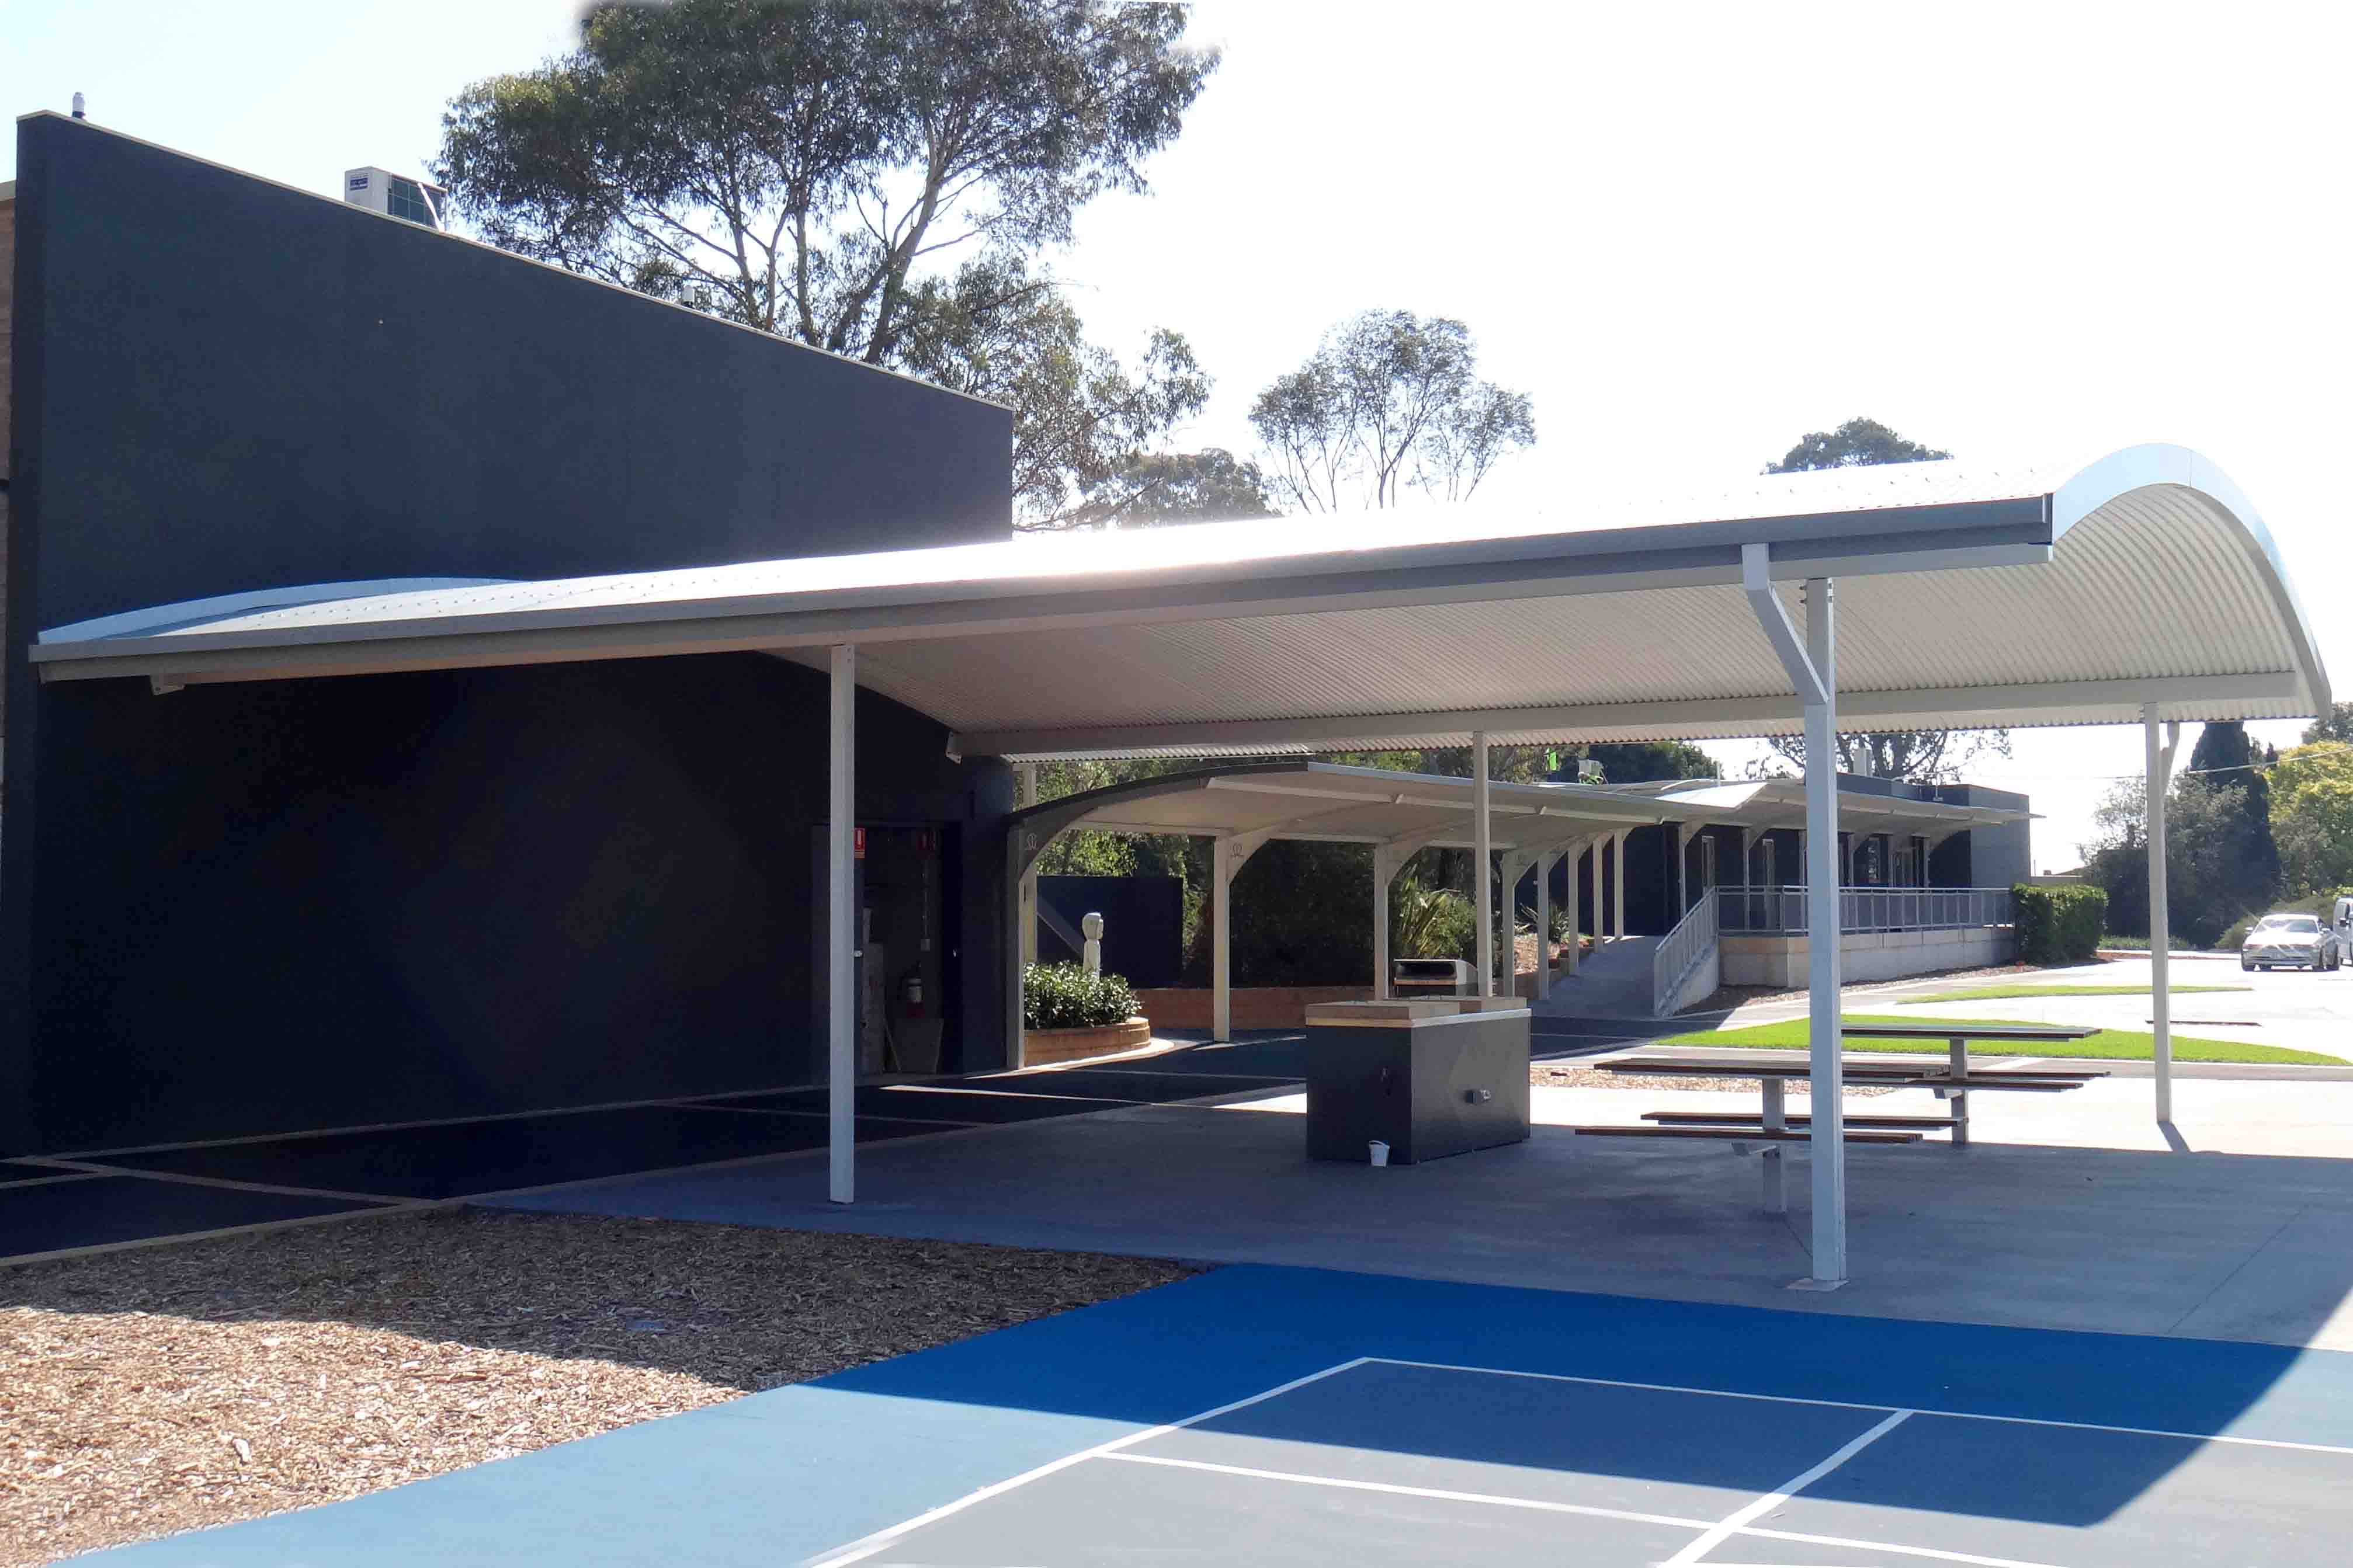 Quad Shelter Commercial Systems Australia